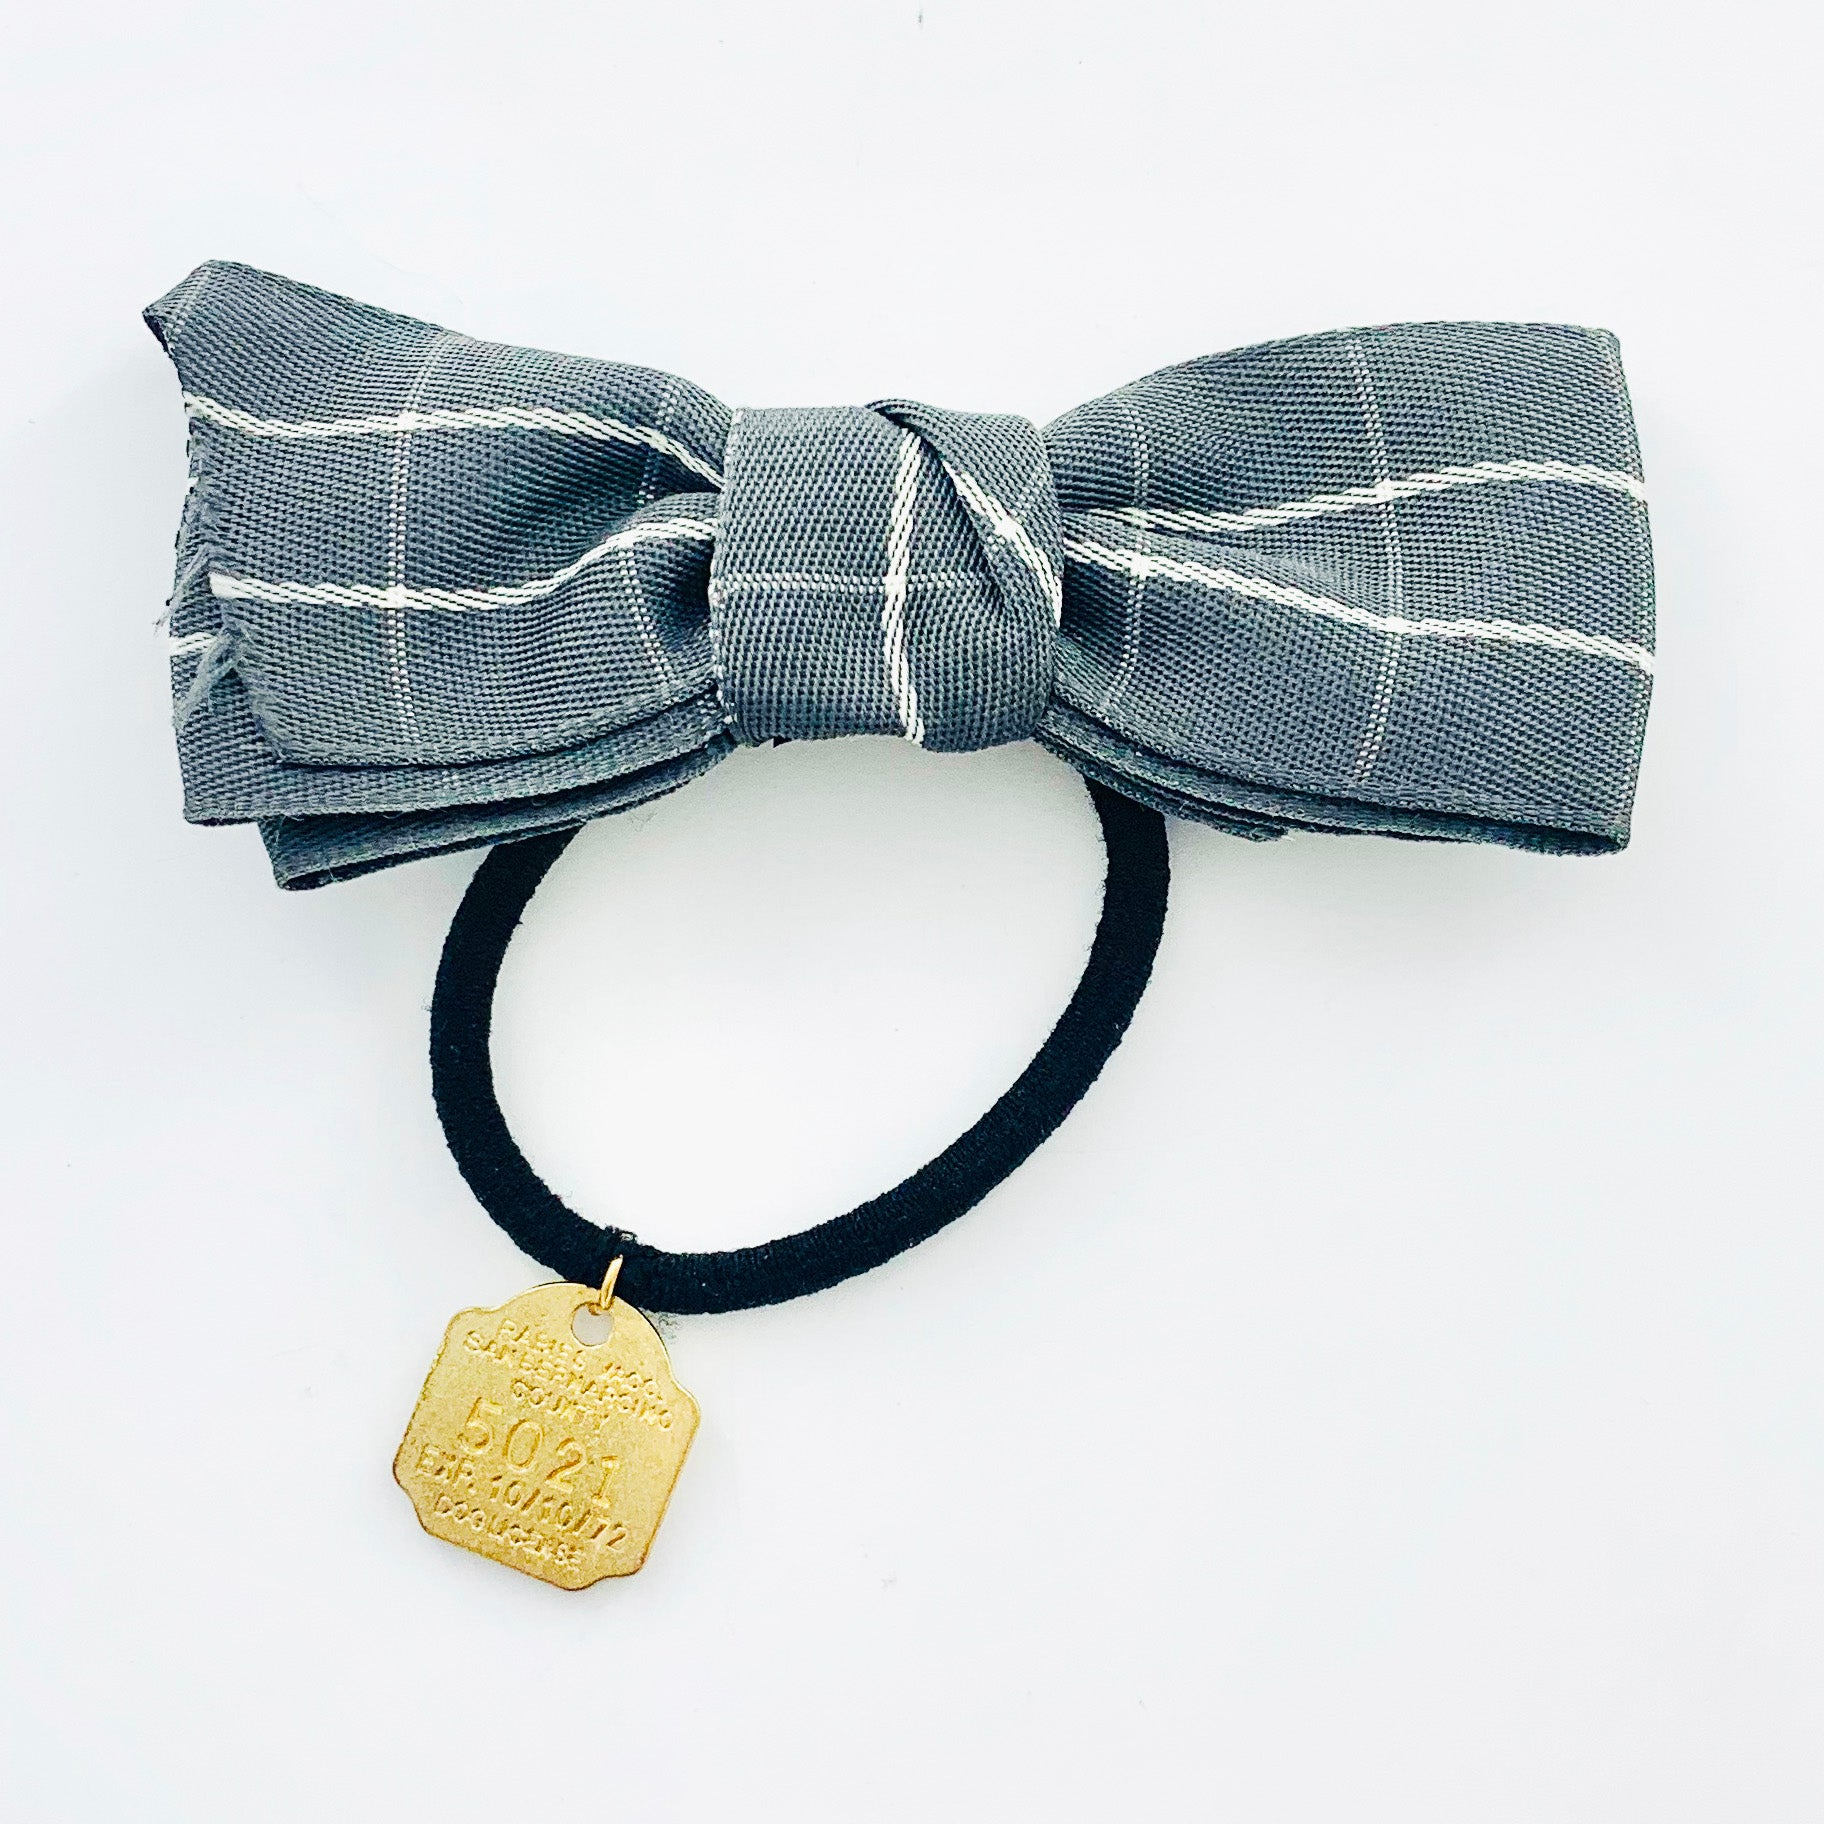 Hair tie with grey fabric ribbon and gold charm detail